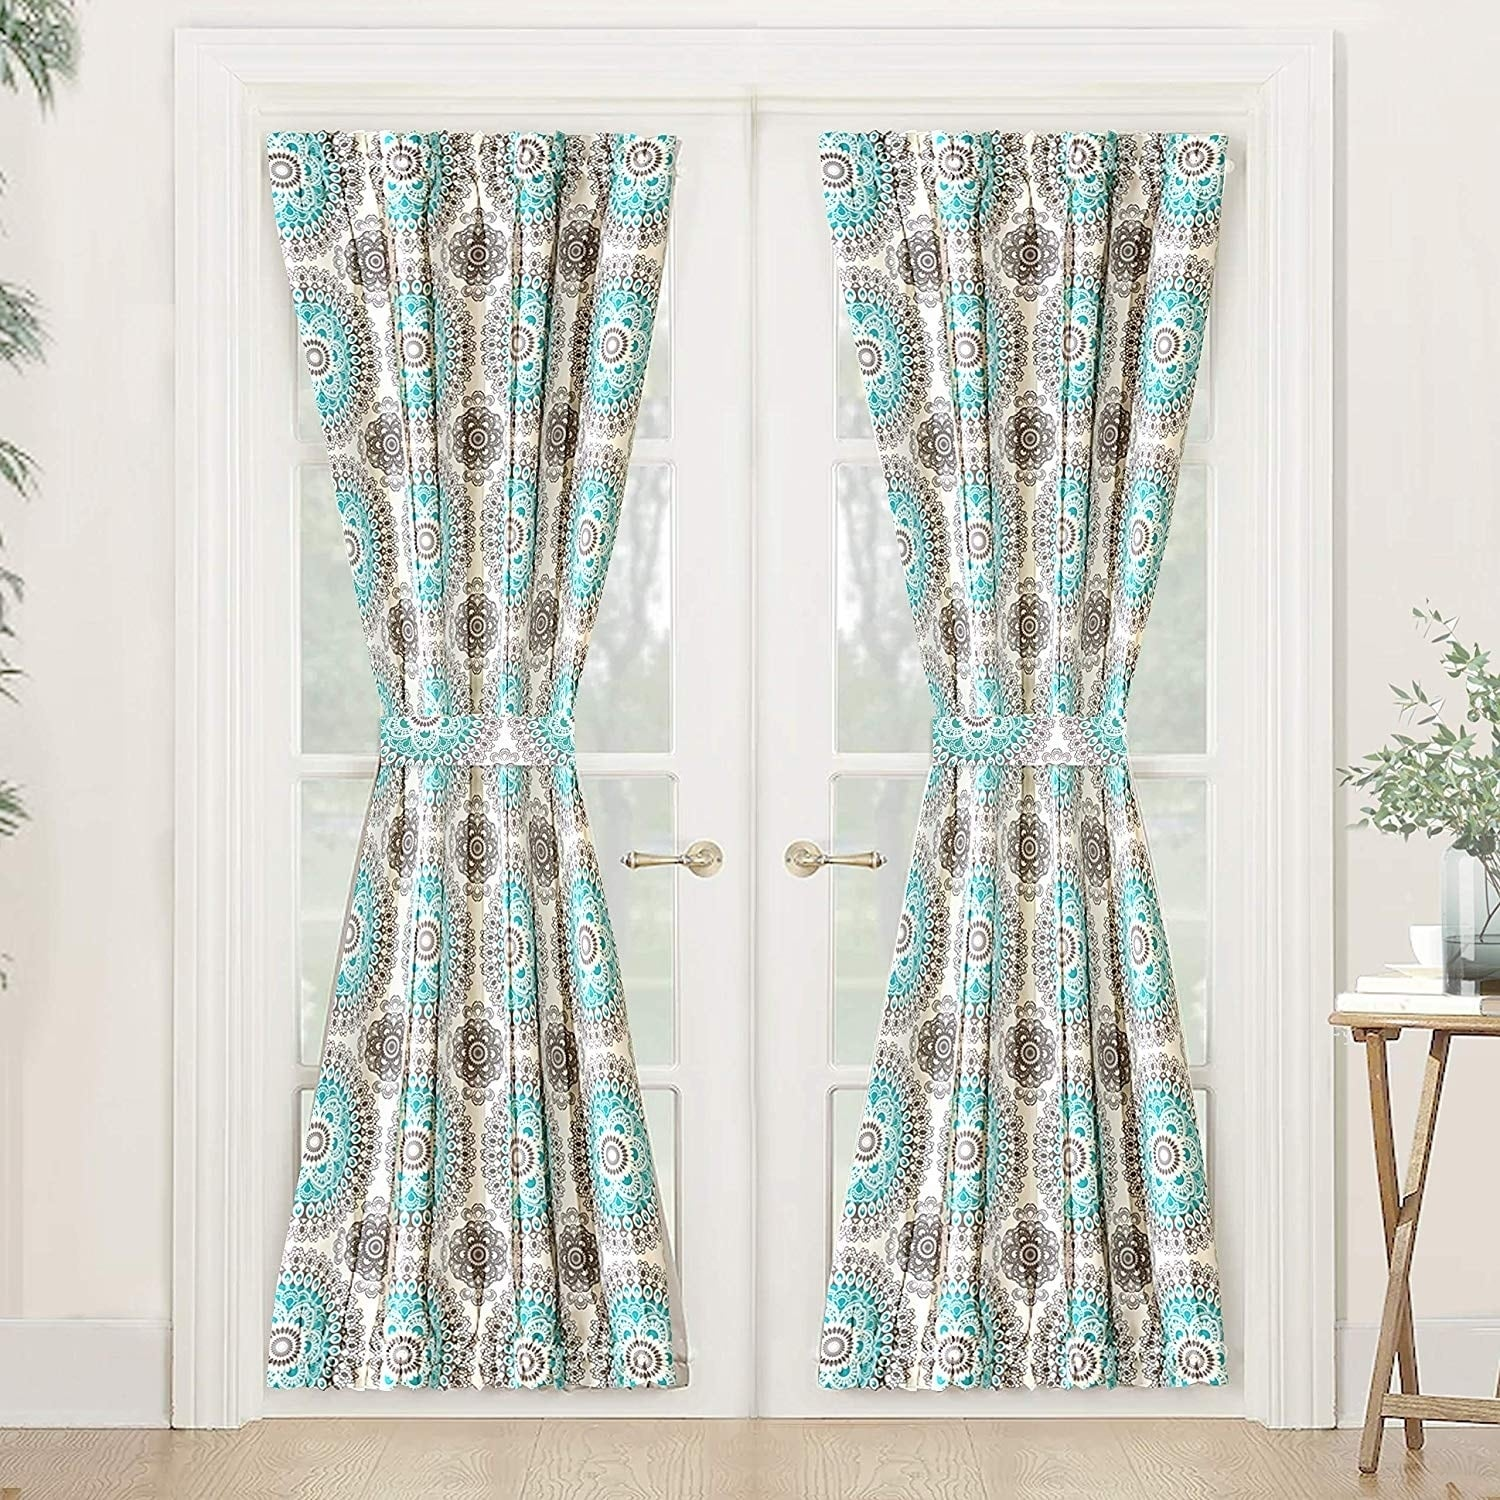 Curtains Pelmets French Style Rod Pocket Door Panel Blackout Curtain Thermal Insulated Panel Home Furniture Diy 5050 Pk